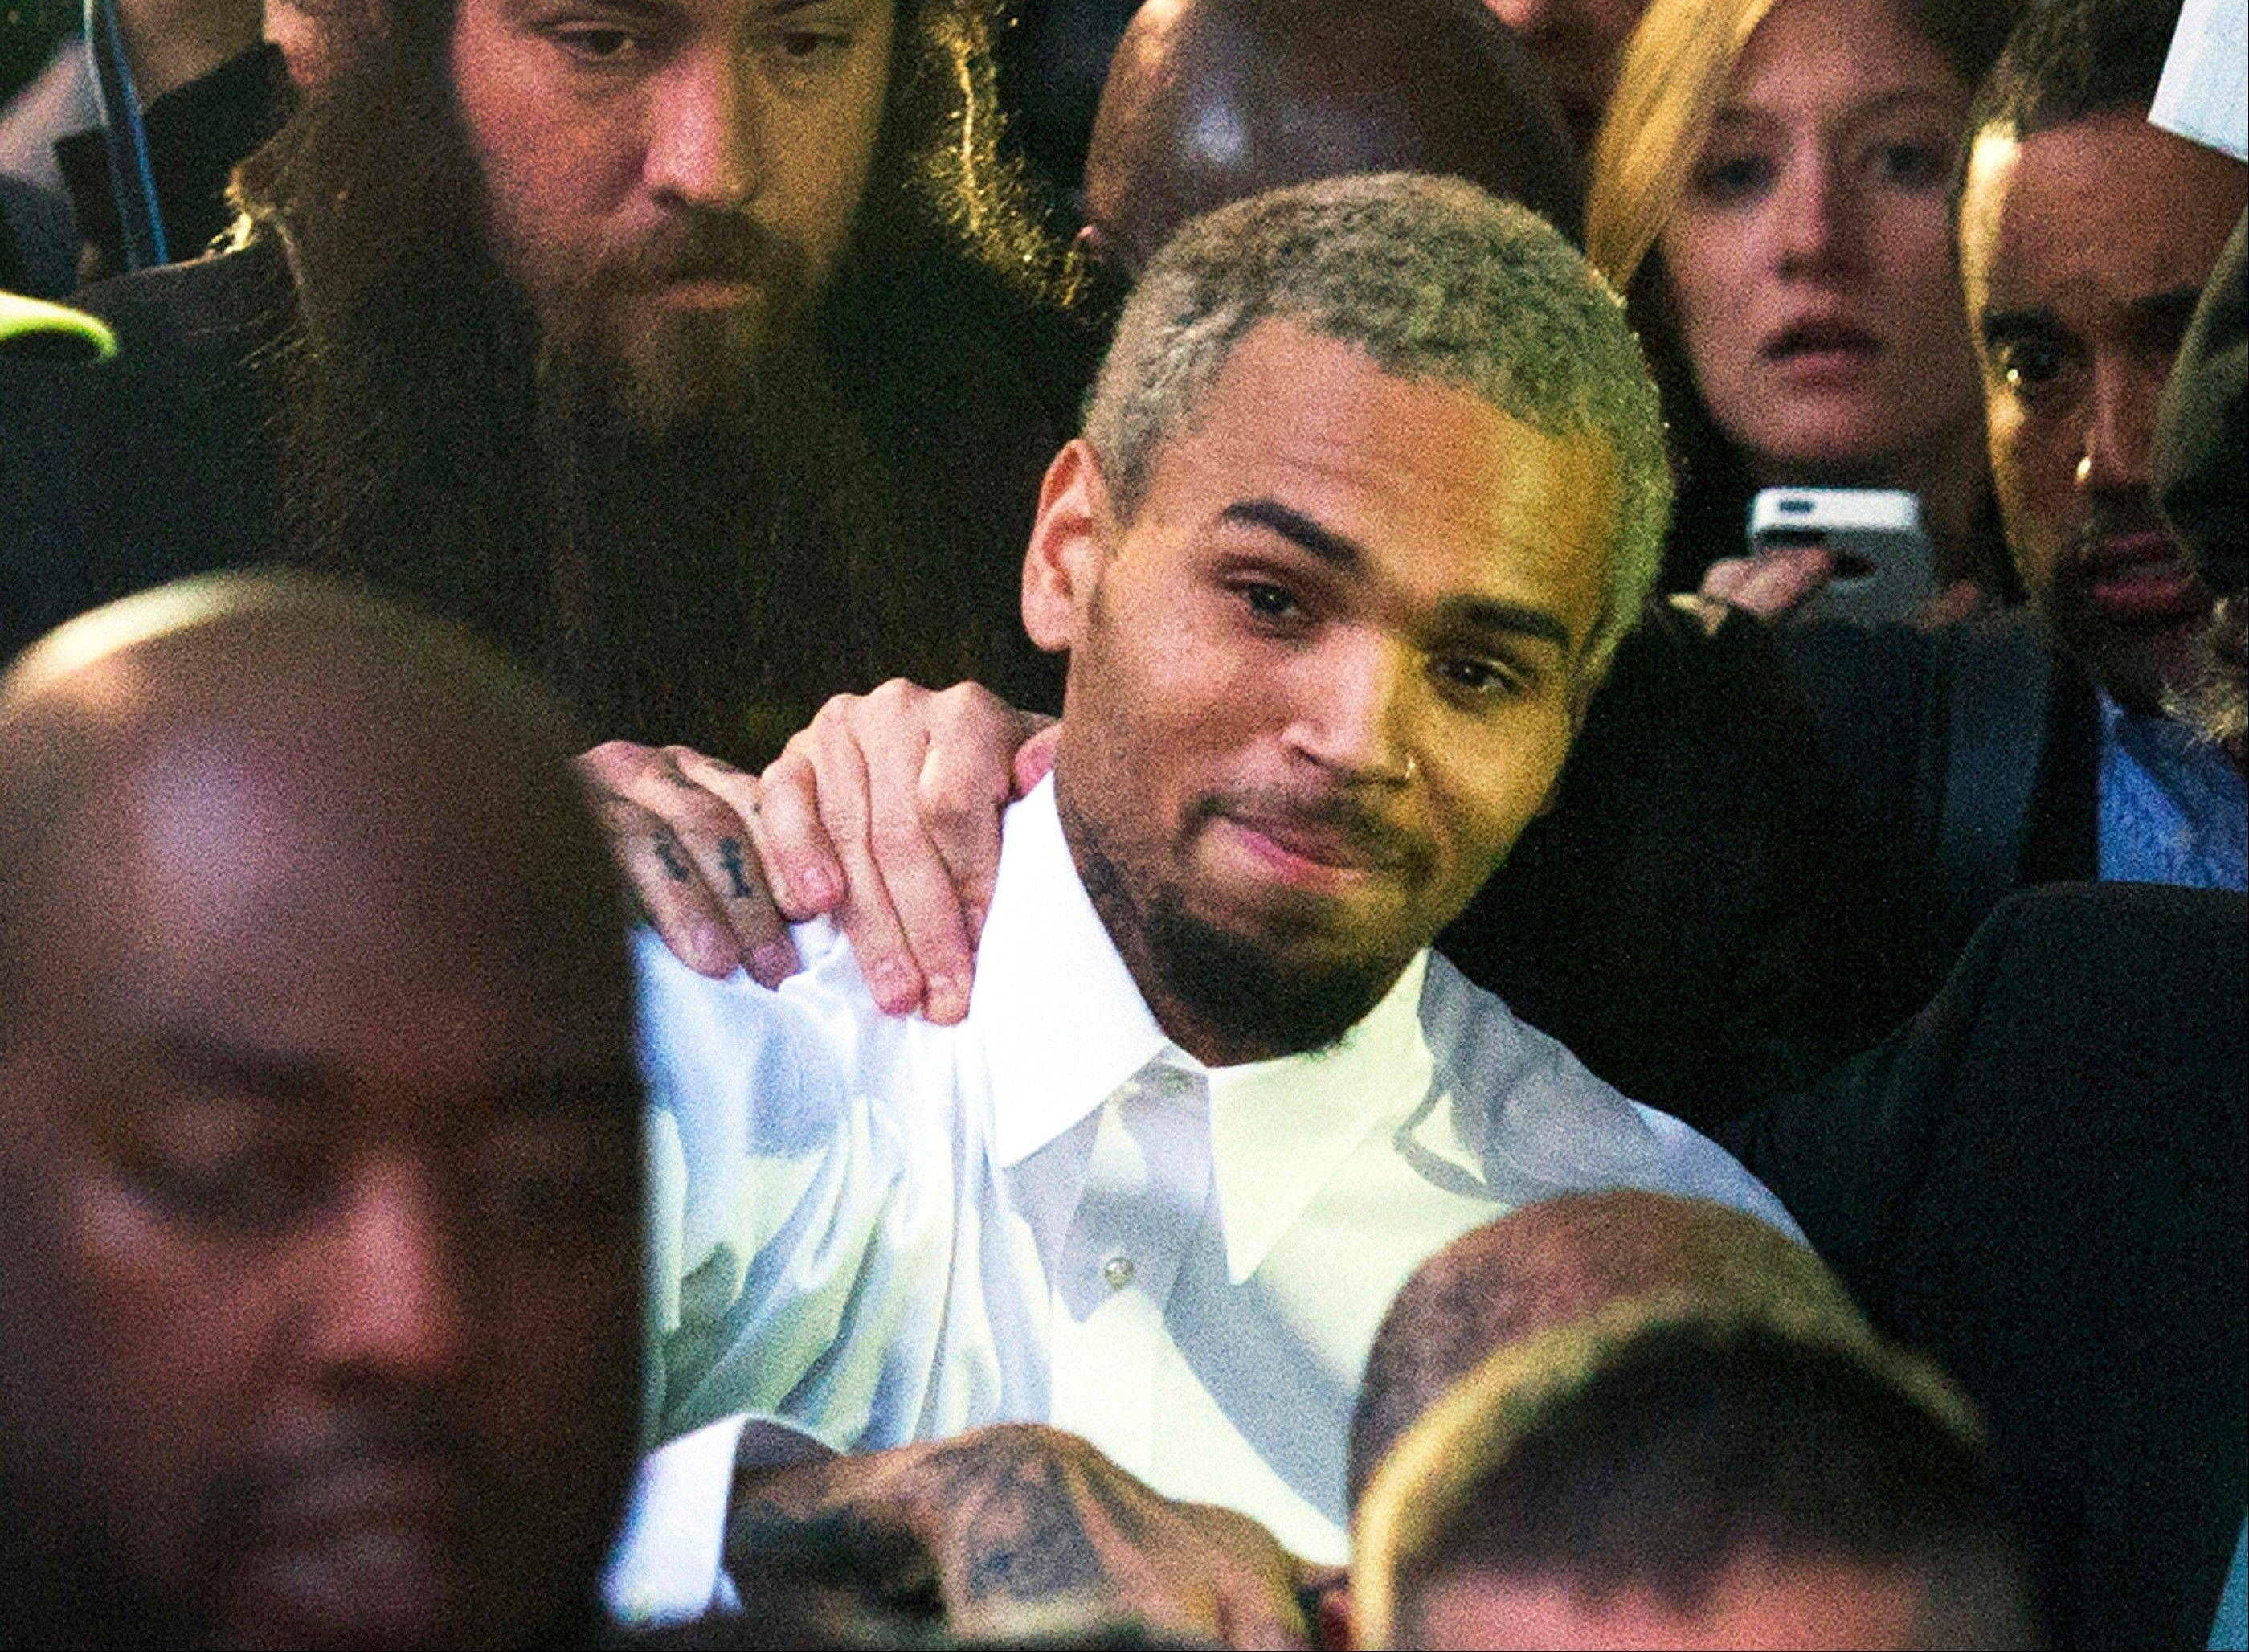 A representative for the R&B singer Chris Brown announced Tuesday that Brown has decided to go to rehab to �gain focus and insight into his past and recent behavior, enabling him to continue the pursuit of his life and his career from a healthier vantage point.�